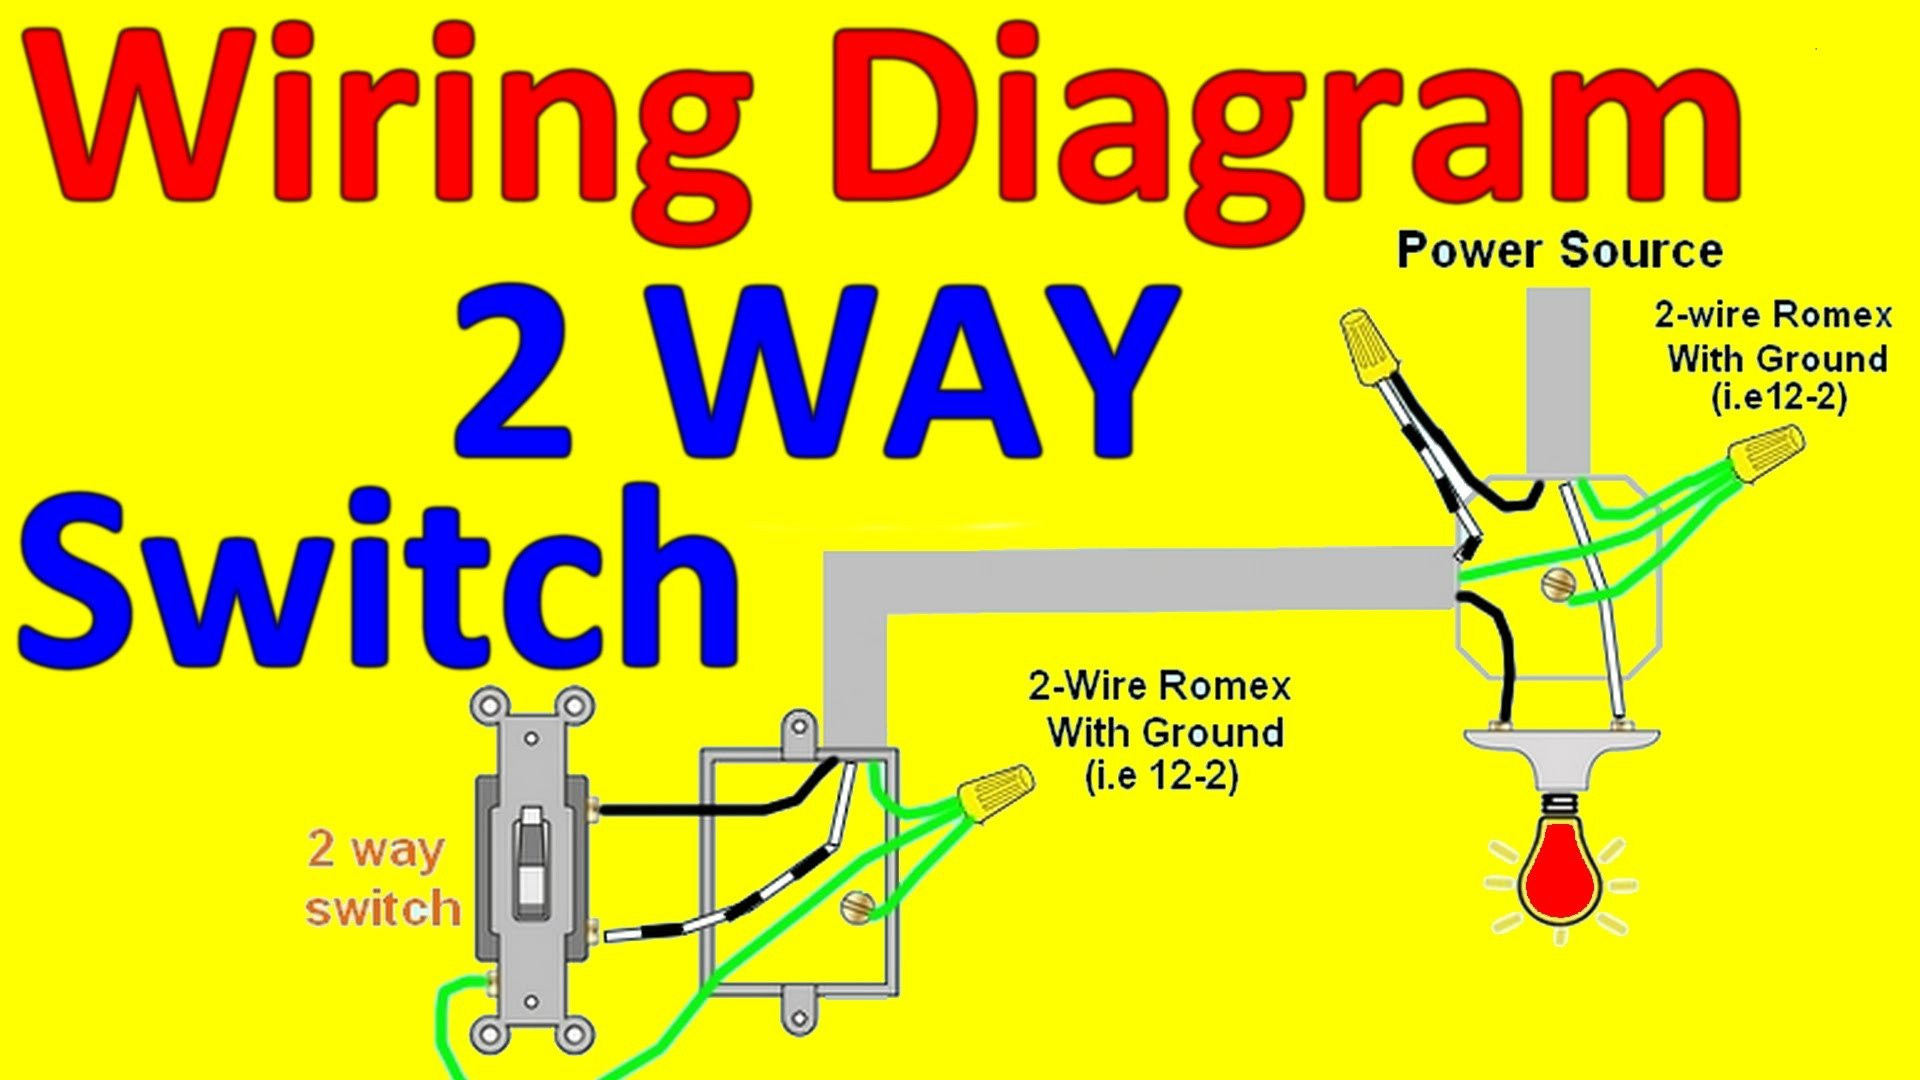 Wiring Diagram Two Gang Two Way Switch Sample Pdf 2 Gang Switch - 2 Way Switch Wiring Diagram Pdf